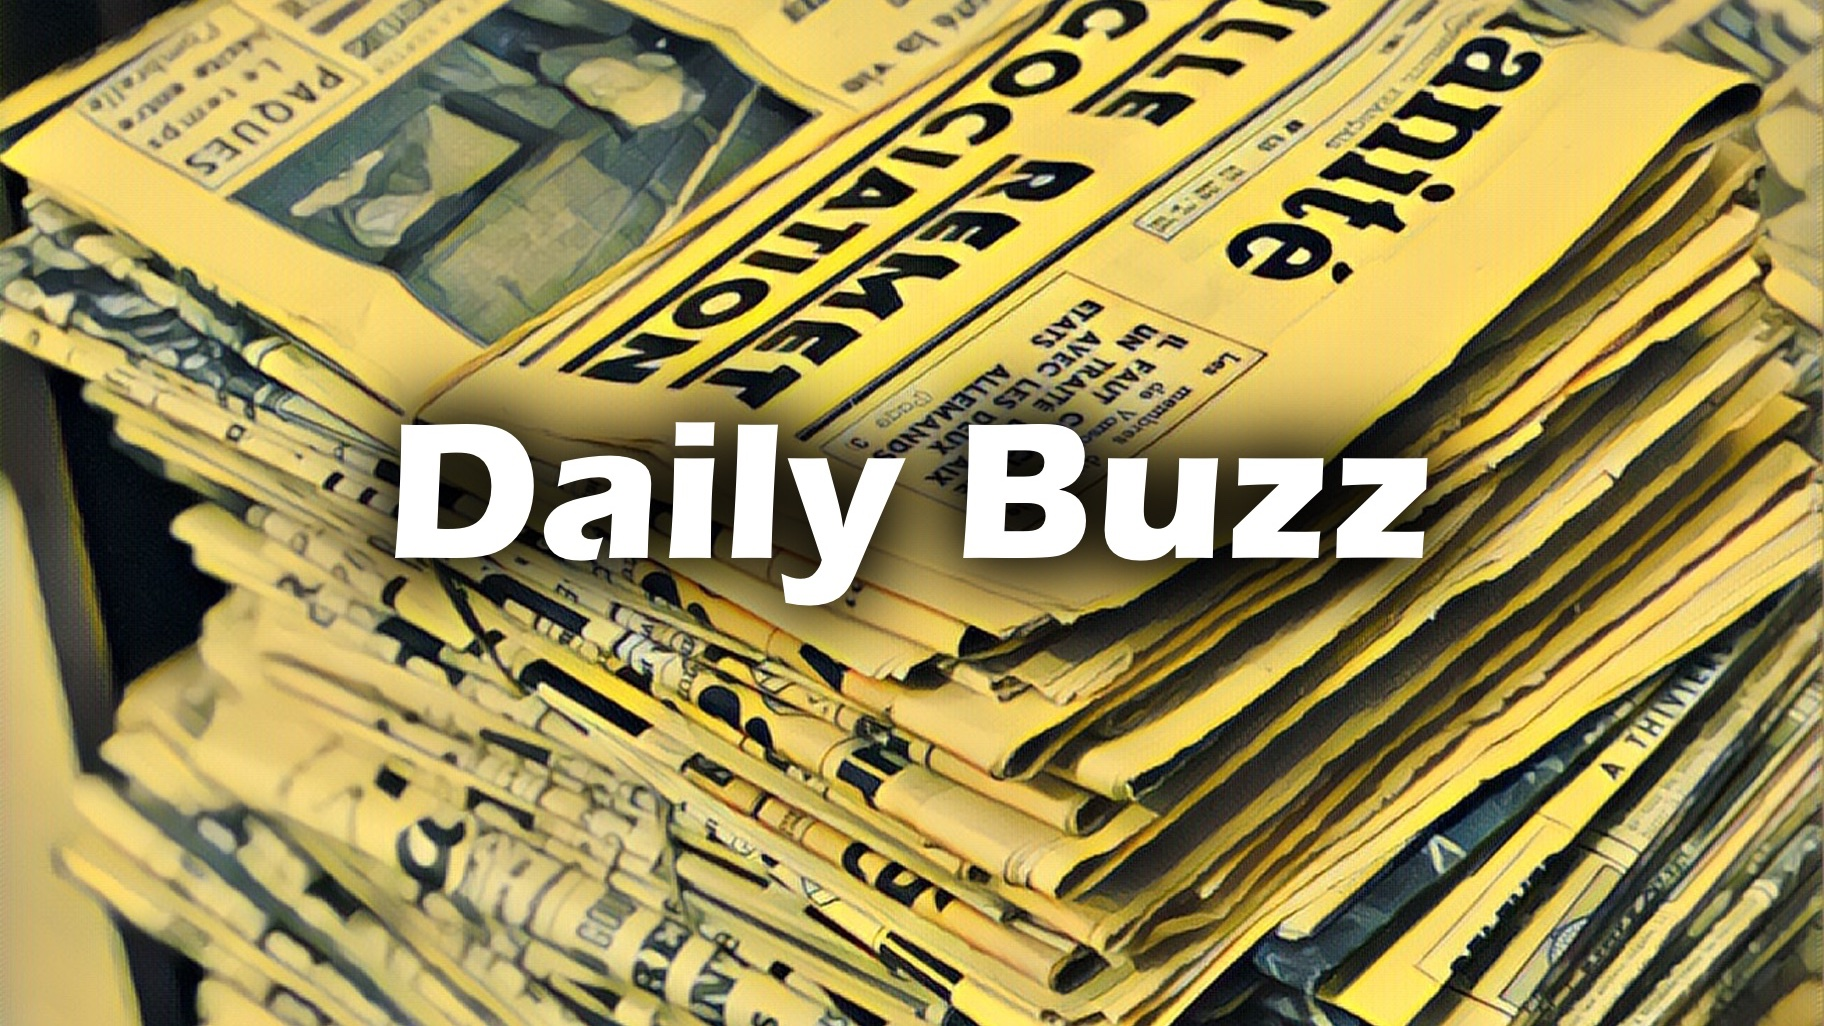 DailyBuzz Friday 9 November 2018